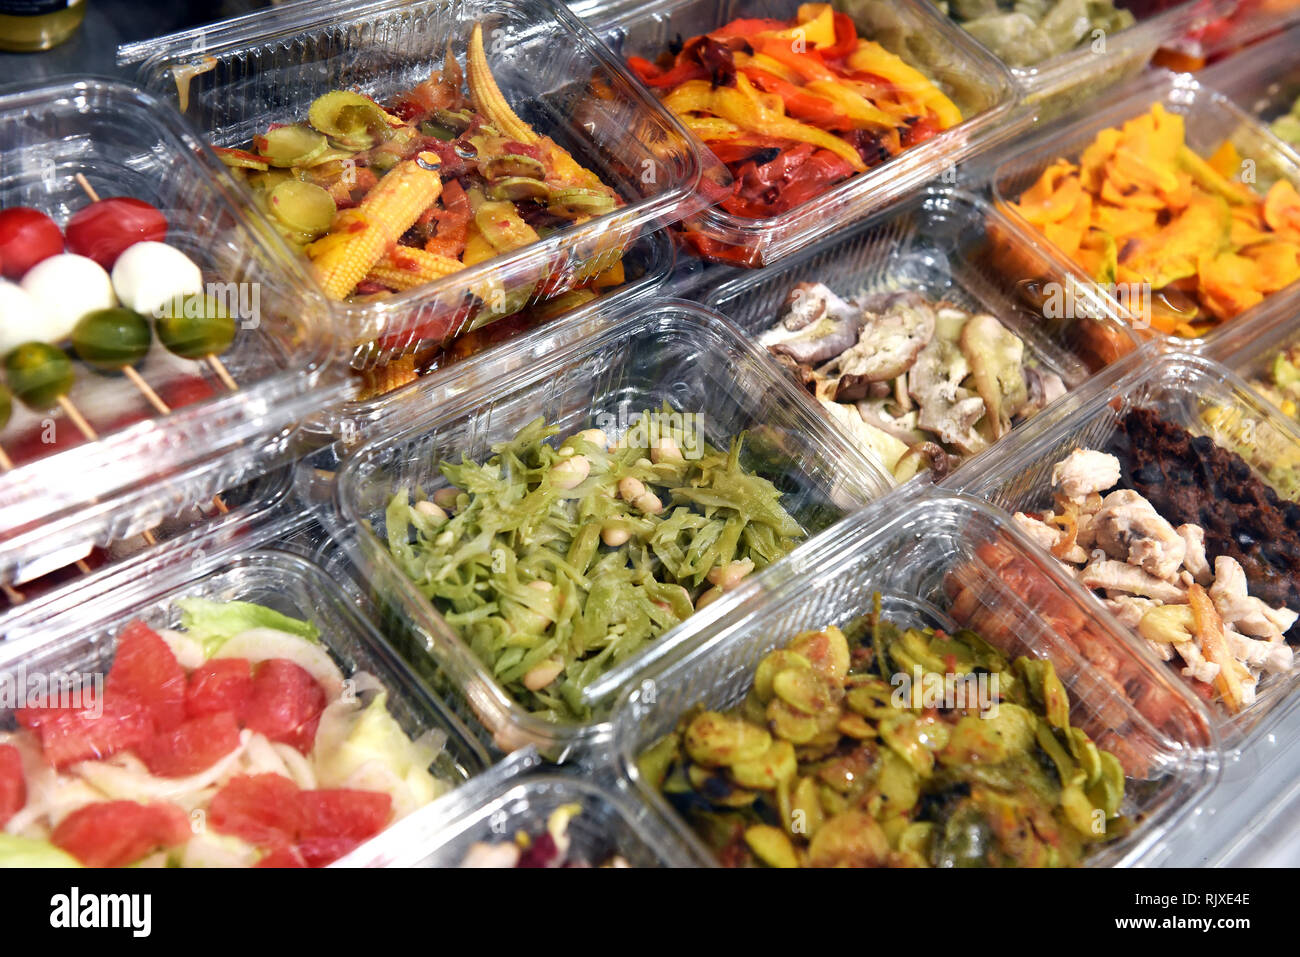 Ready to eat prepared food displayed in metal bins at a shop, restaurant or delicatessen for a buffet style meal - Stock Image